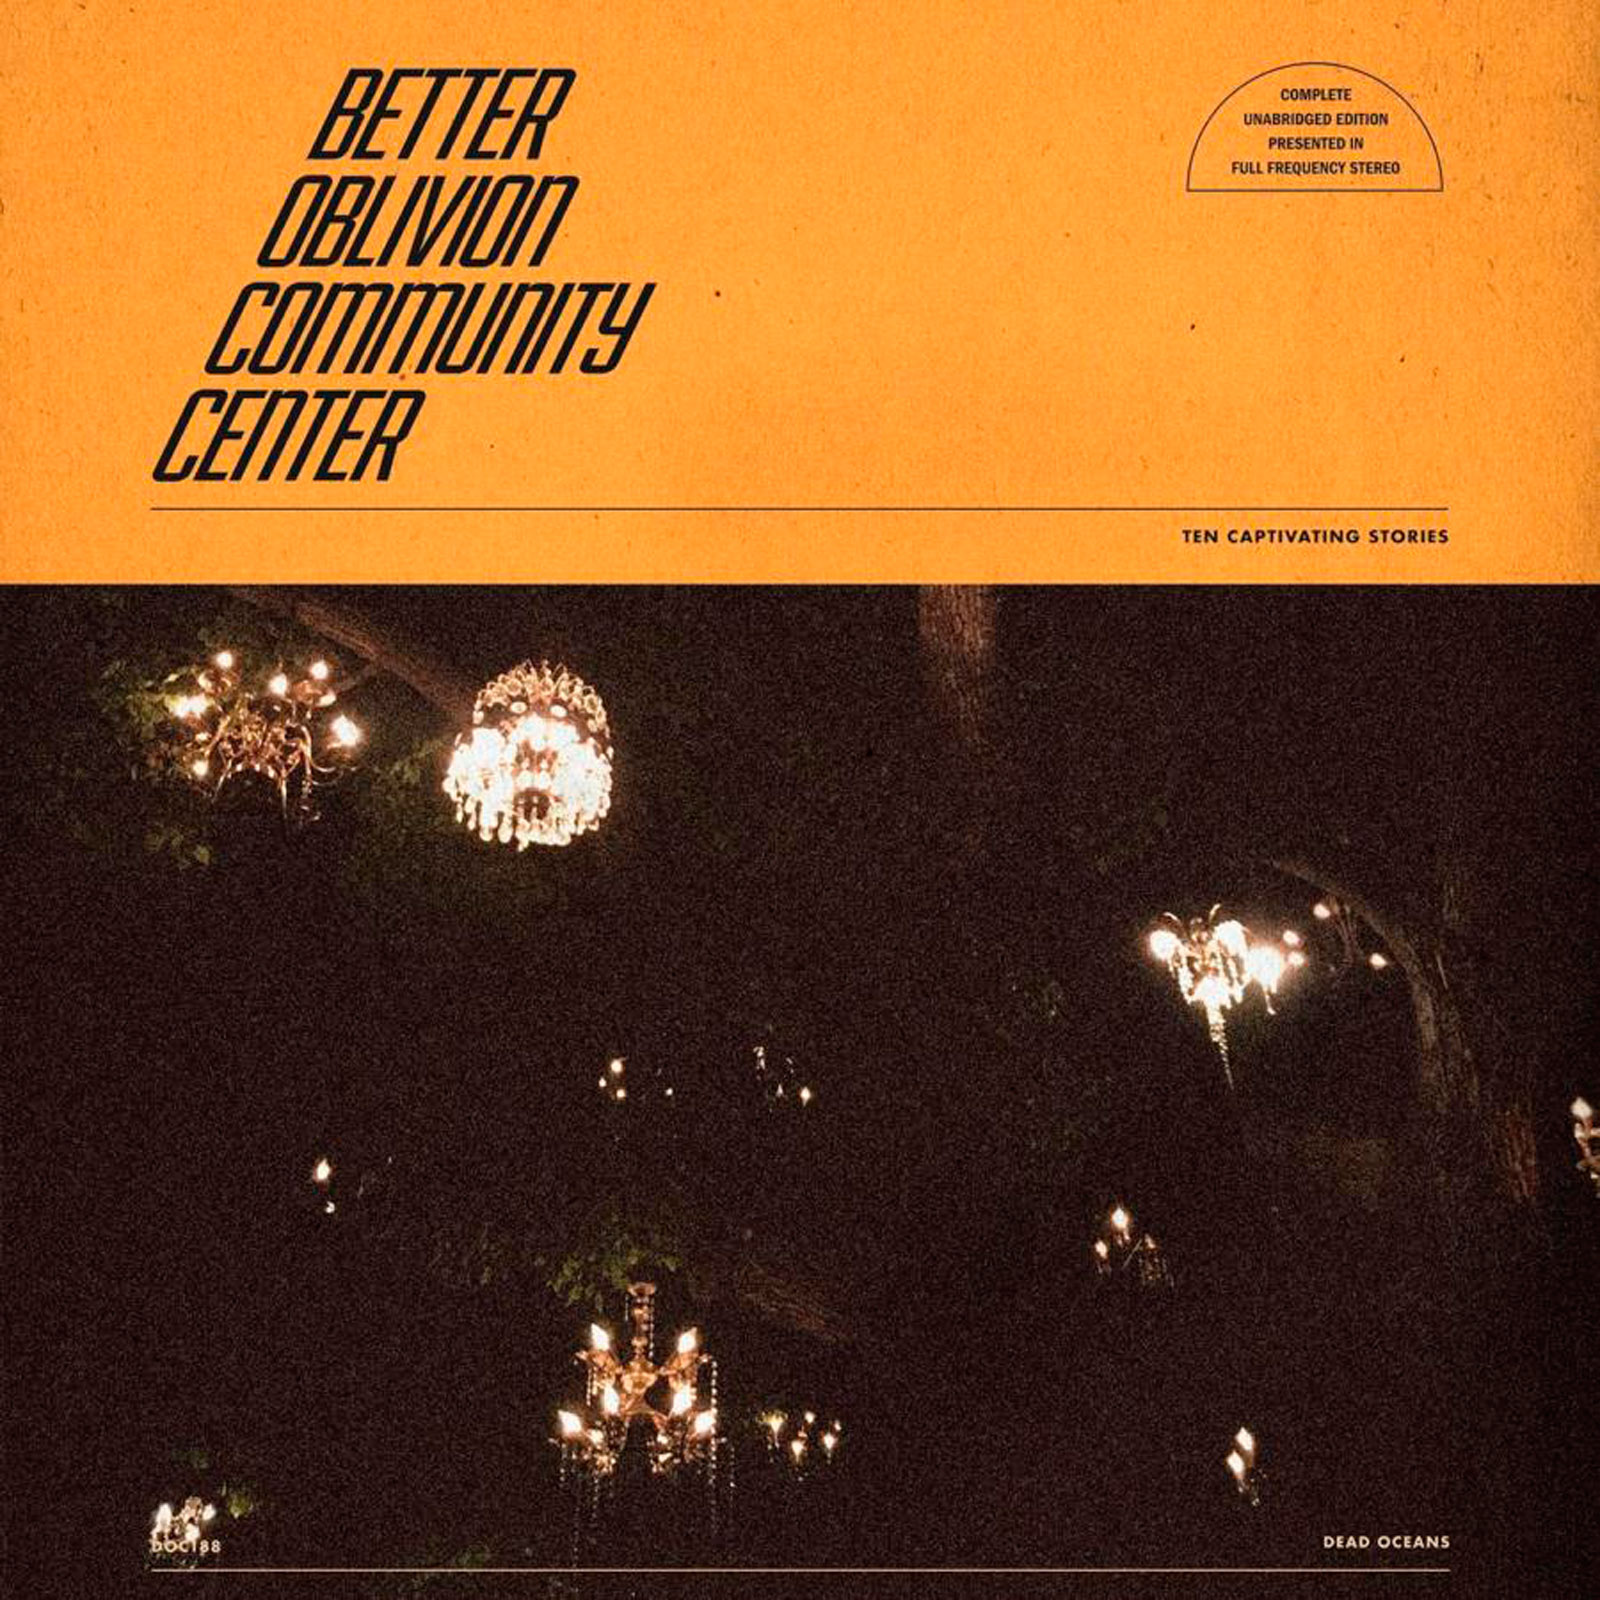 Mejores discos de enero 2019. BETTER OBLIVION COMMUNITY CENTER – Better Oblivion Community Center